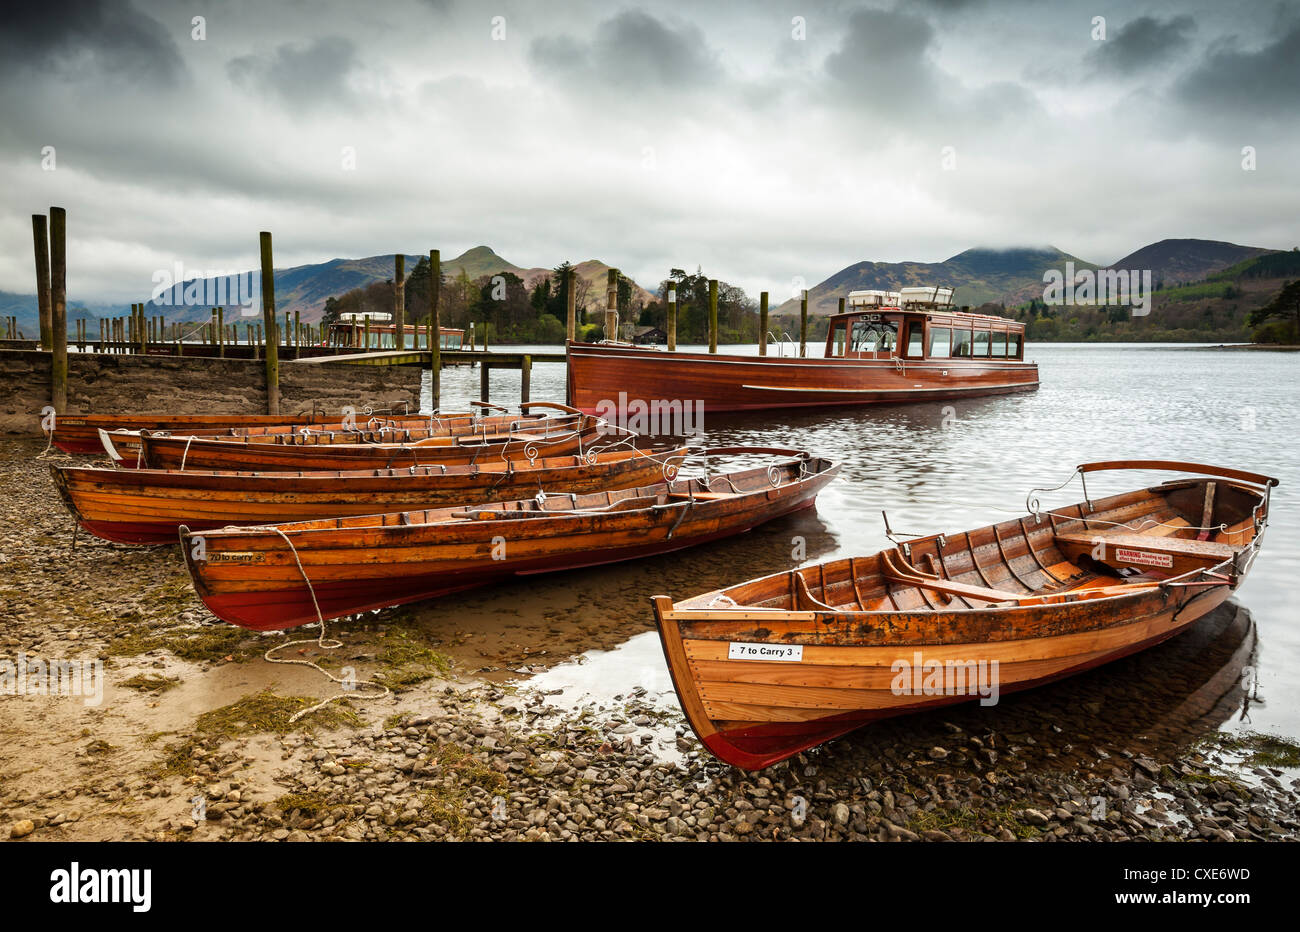 Keswick launch boats, Derwent Water, Lake District National Park, Cumbria, England - Stock Image